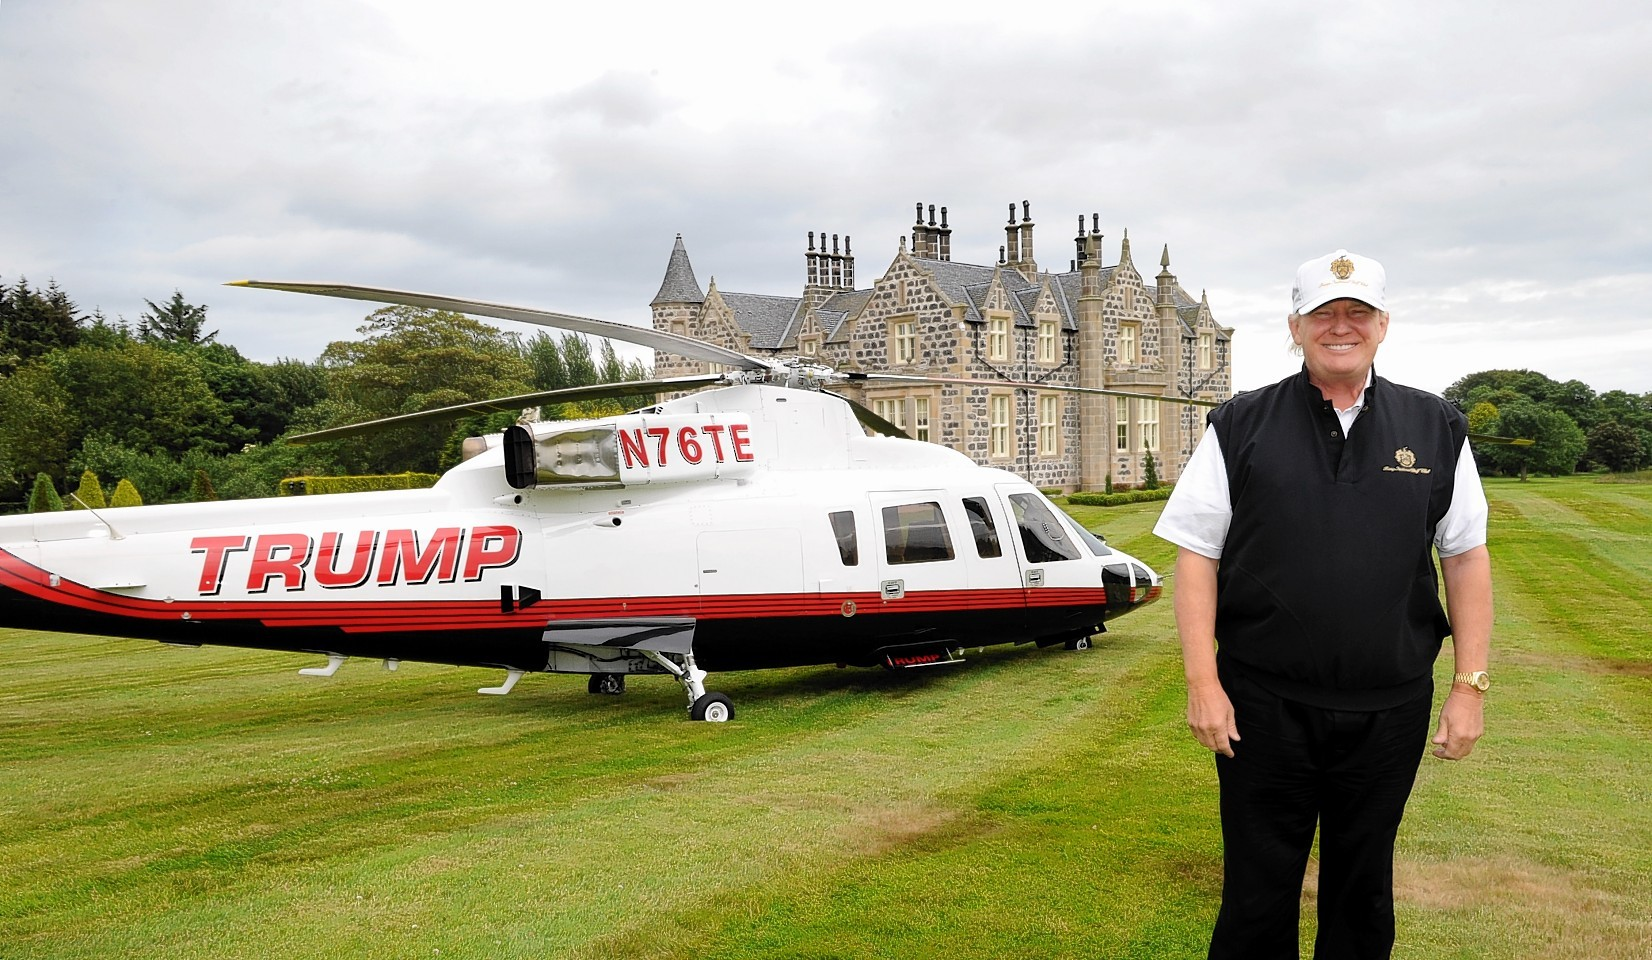 Donald Trump at the Menie Estate last year